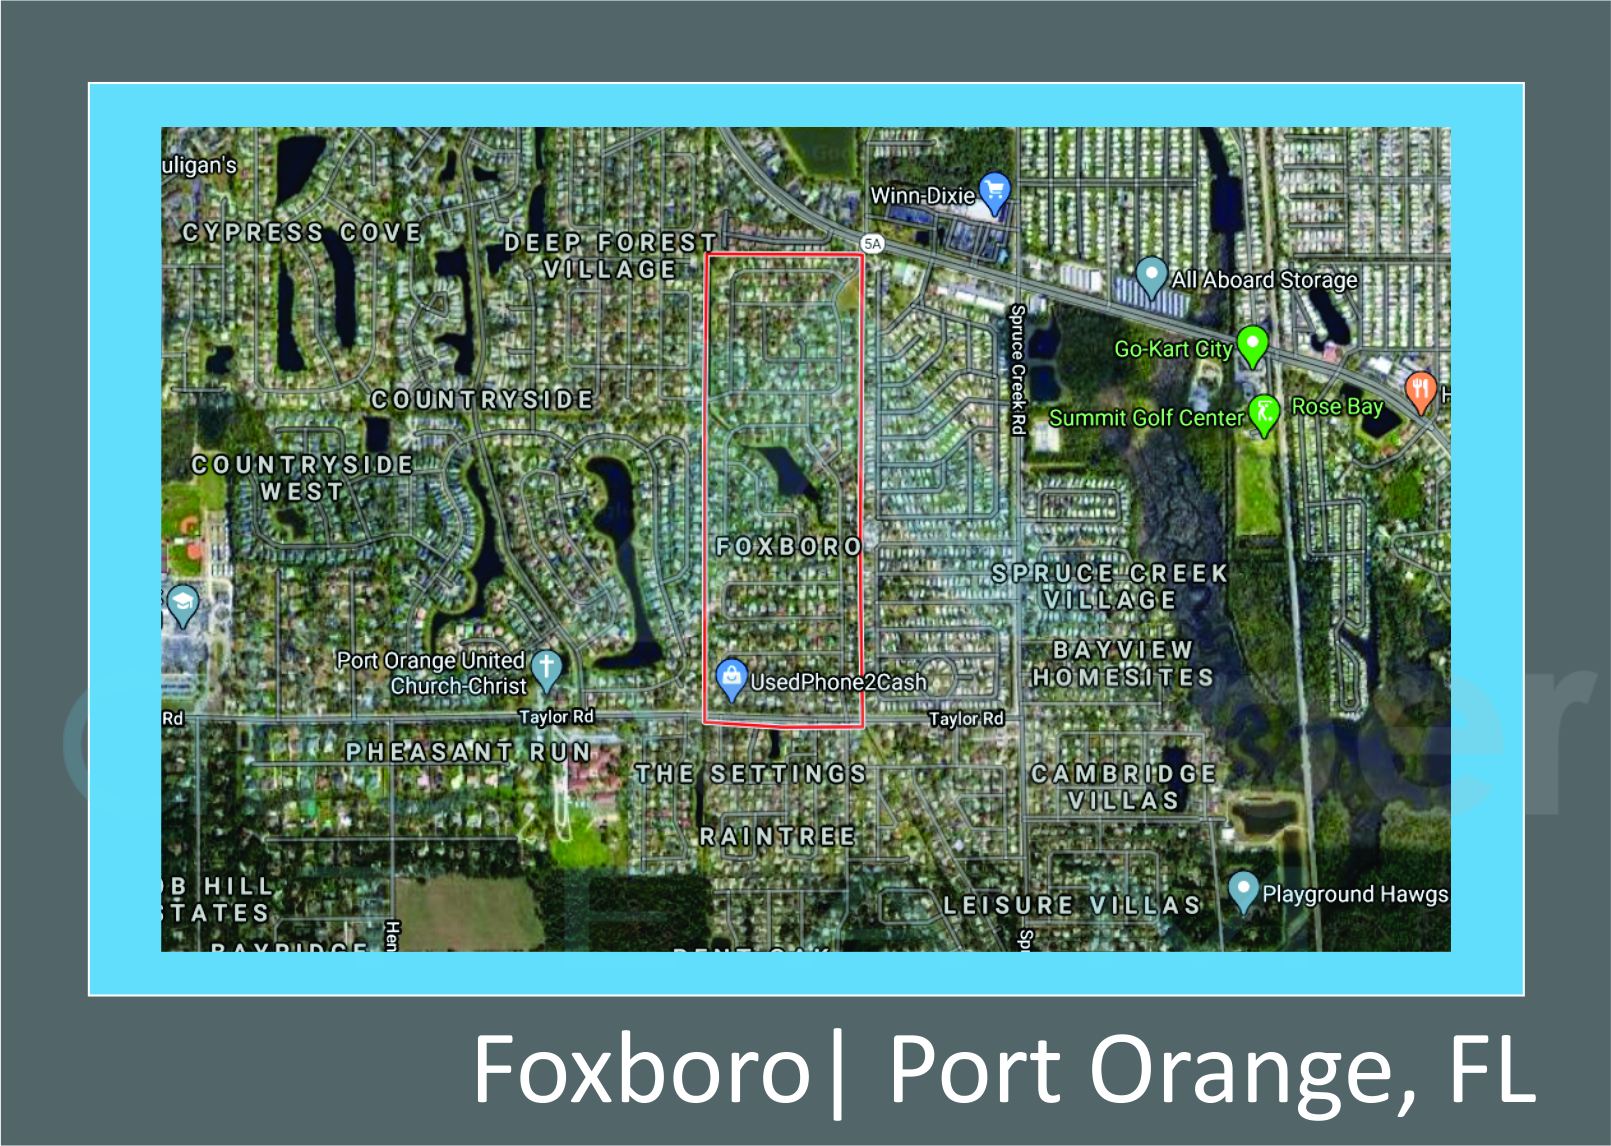 Map of Foxboro Port Orange, FL